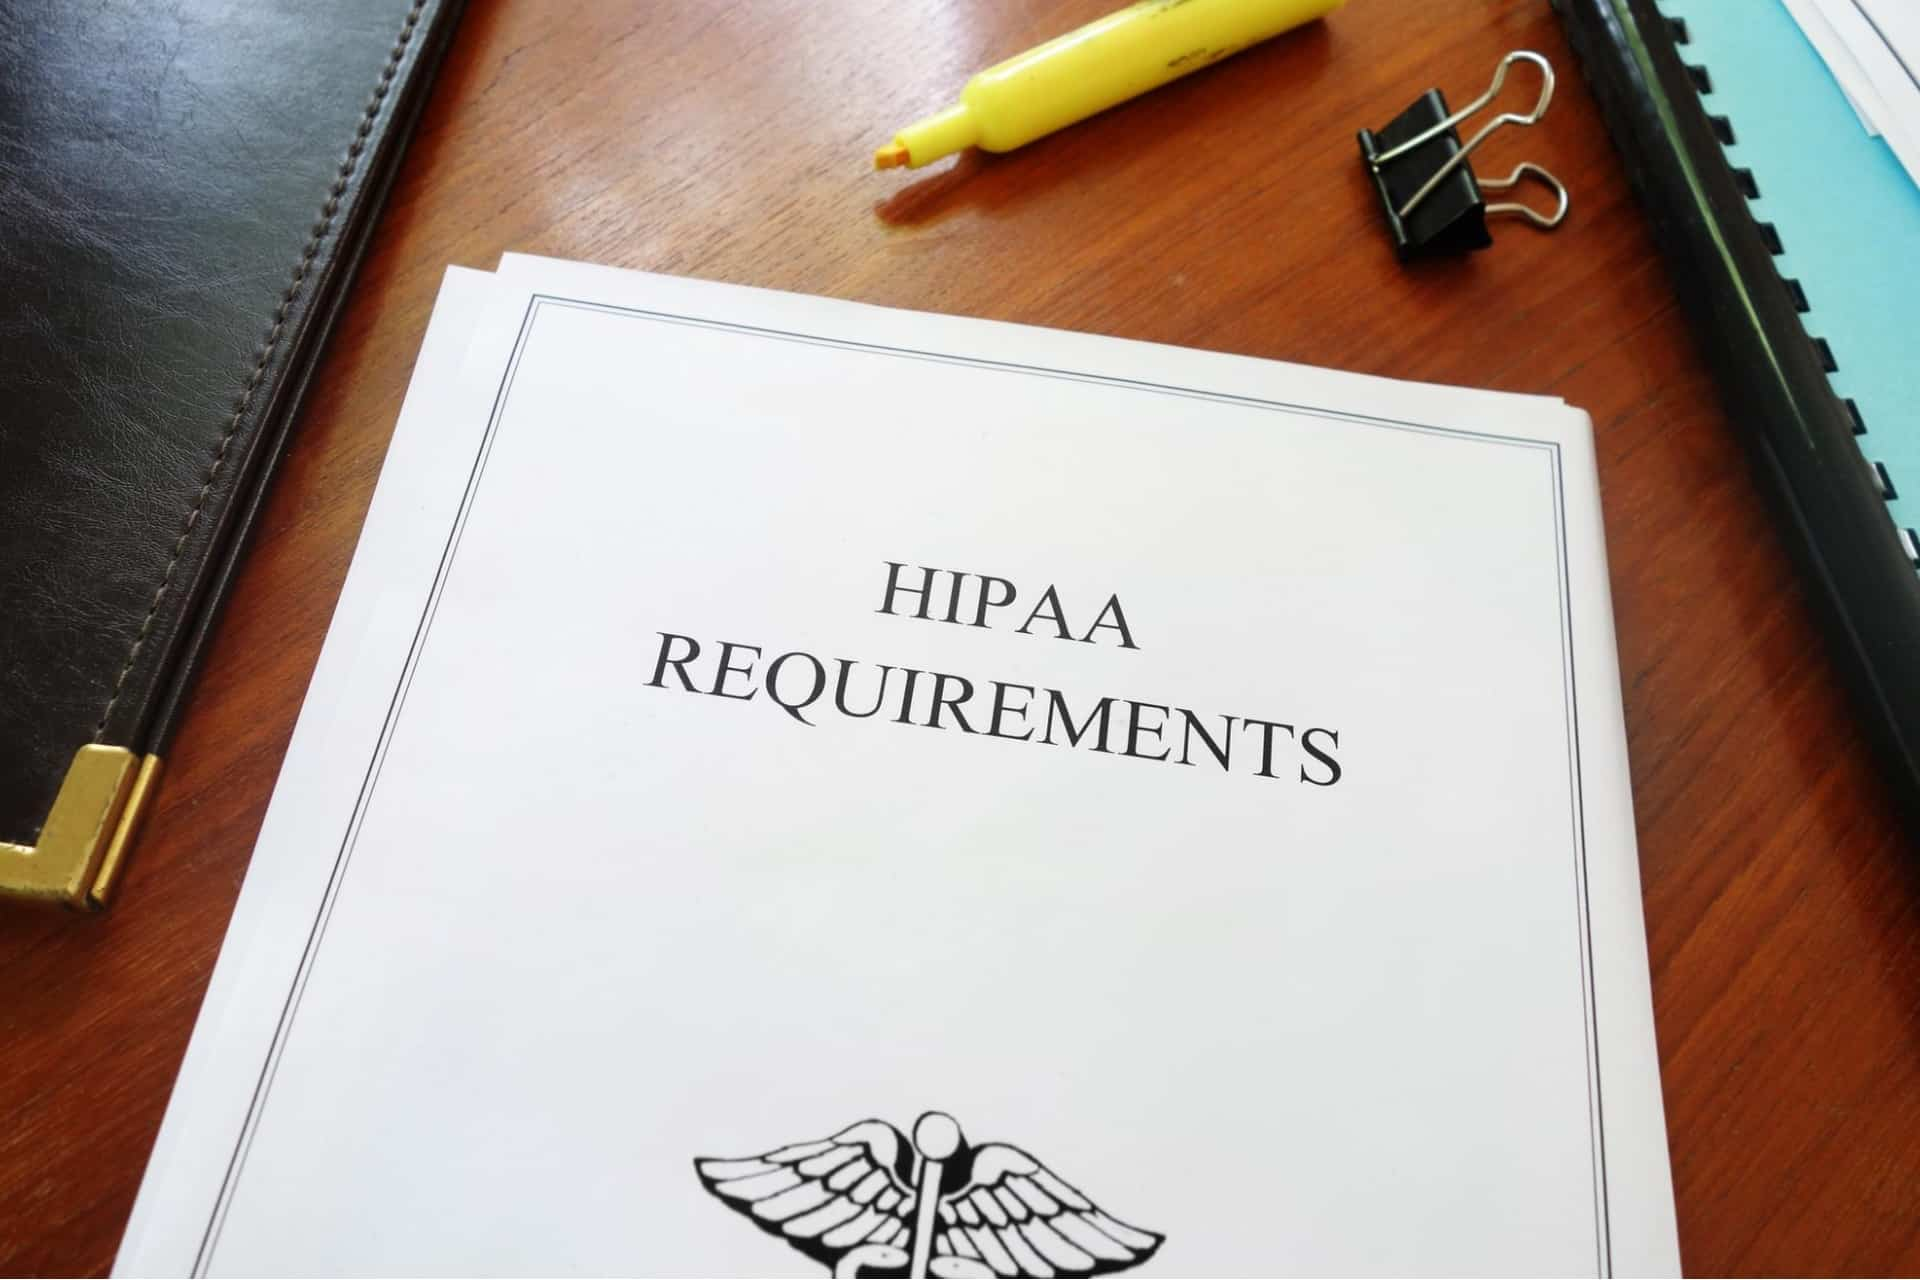 Should HIPAA Audit Logs be Kept for 6 Years?